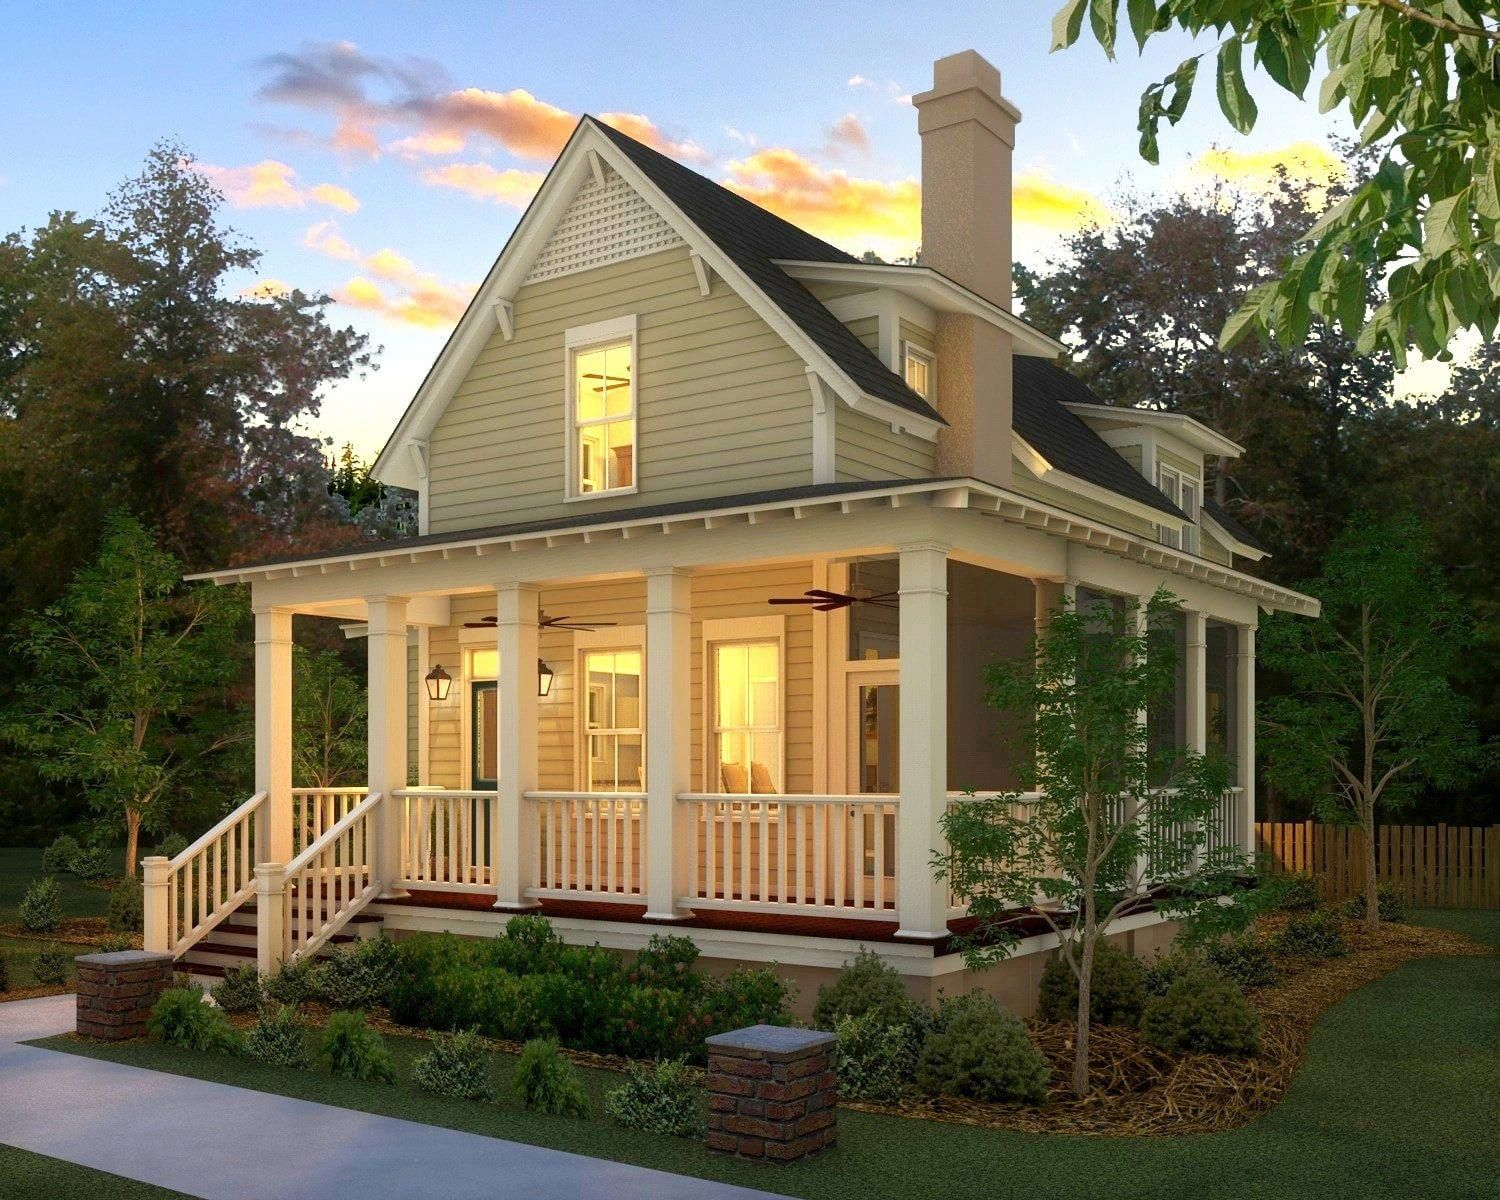 This Unique Thing Is An Unquestionably Inspiring And Spectacular Idea Cottage Homes Small House Plans House Plans